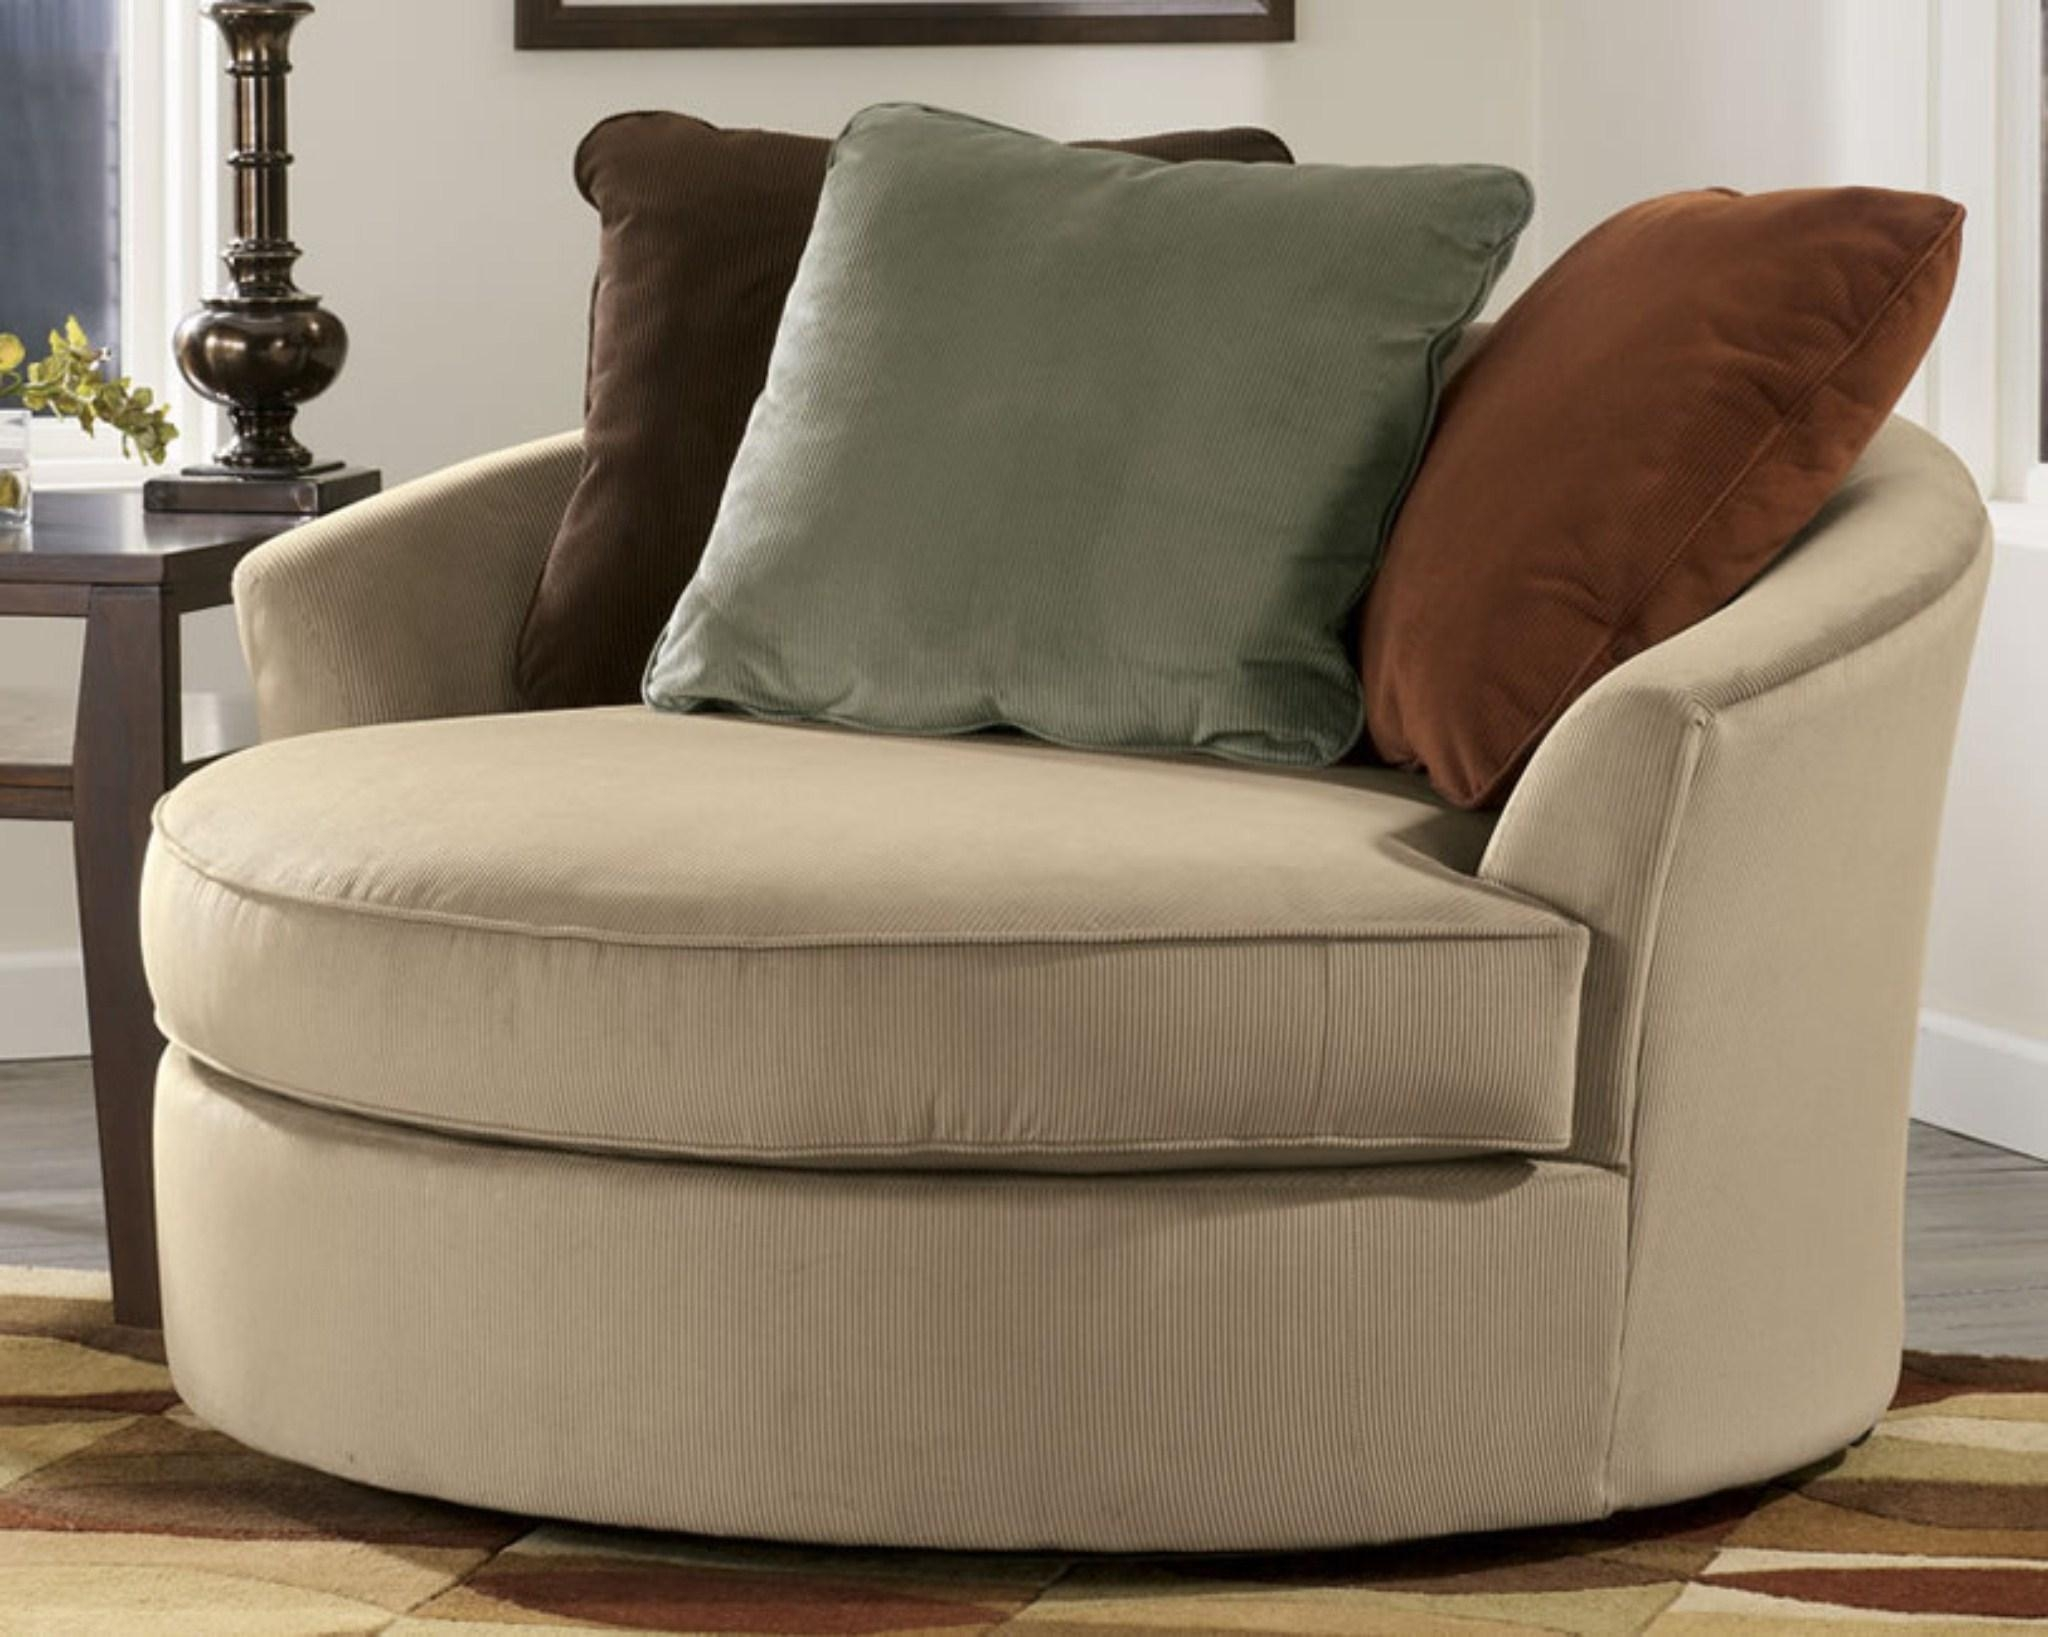 Round Swivel Sofa Chair – Leather Sectional Sofa Throughout Swivel Sofa Chairs (View 13 of 20)